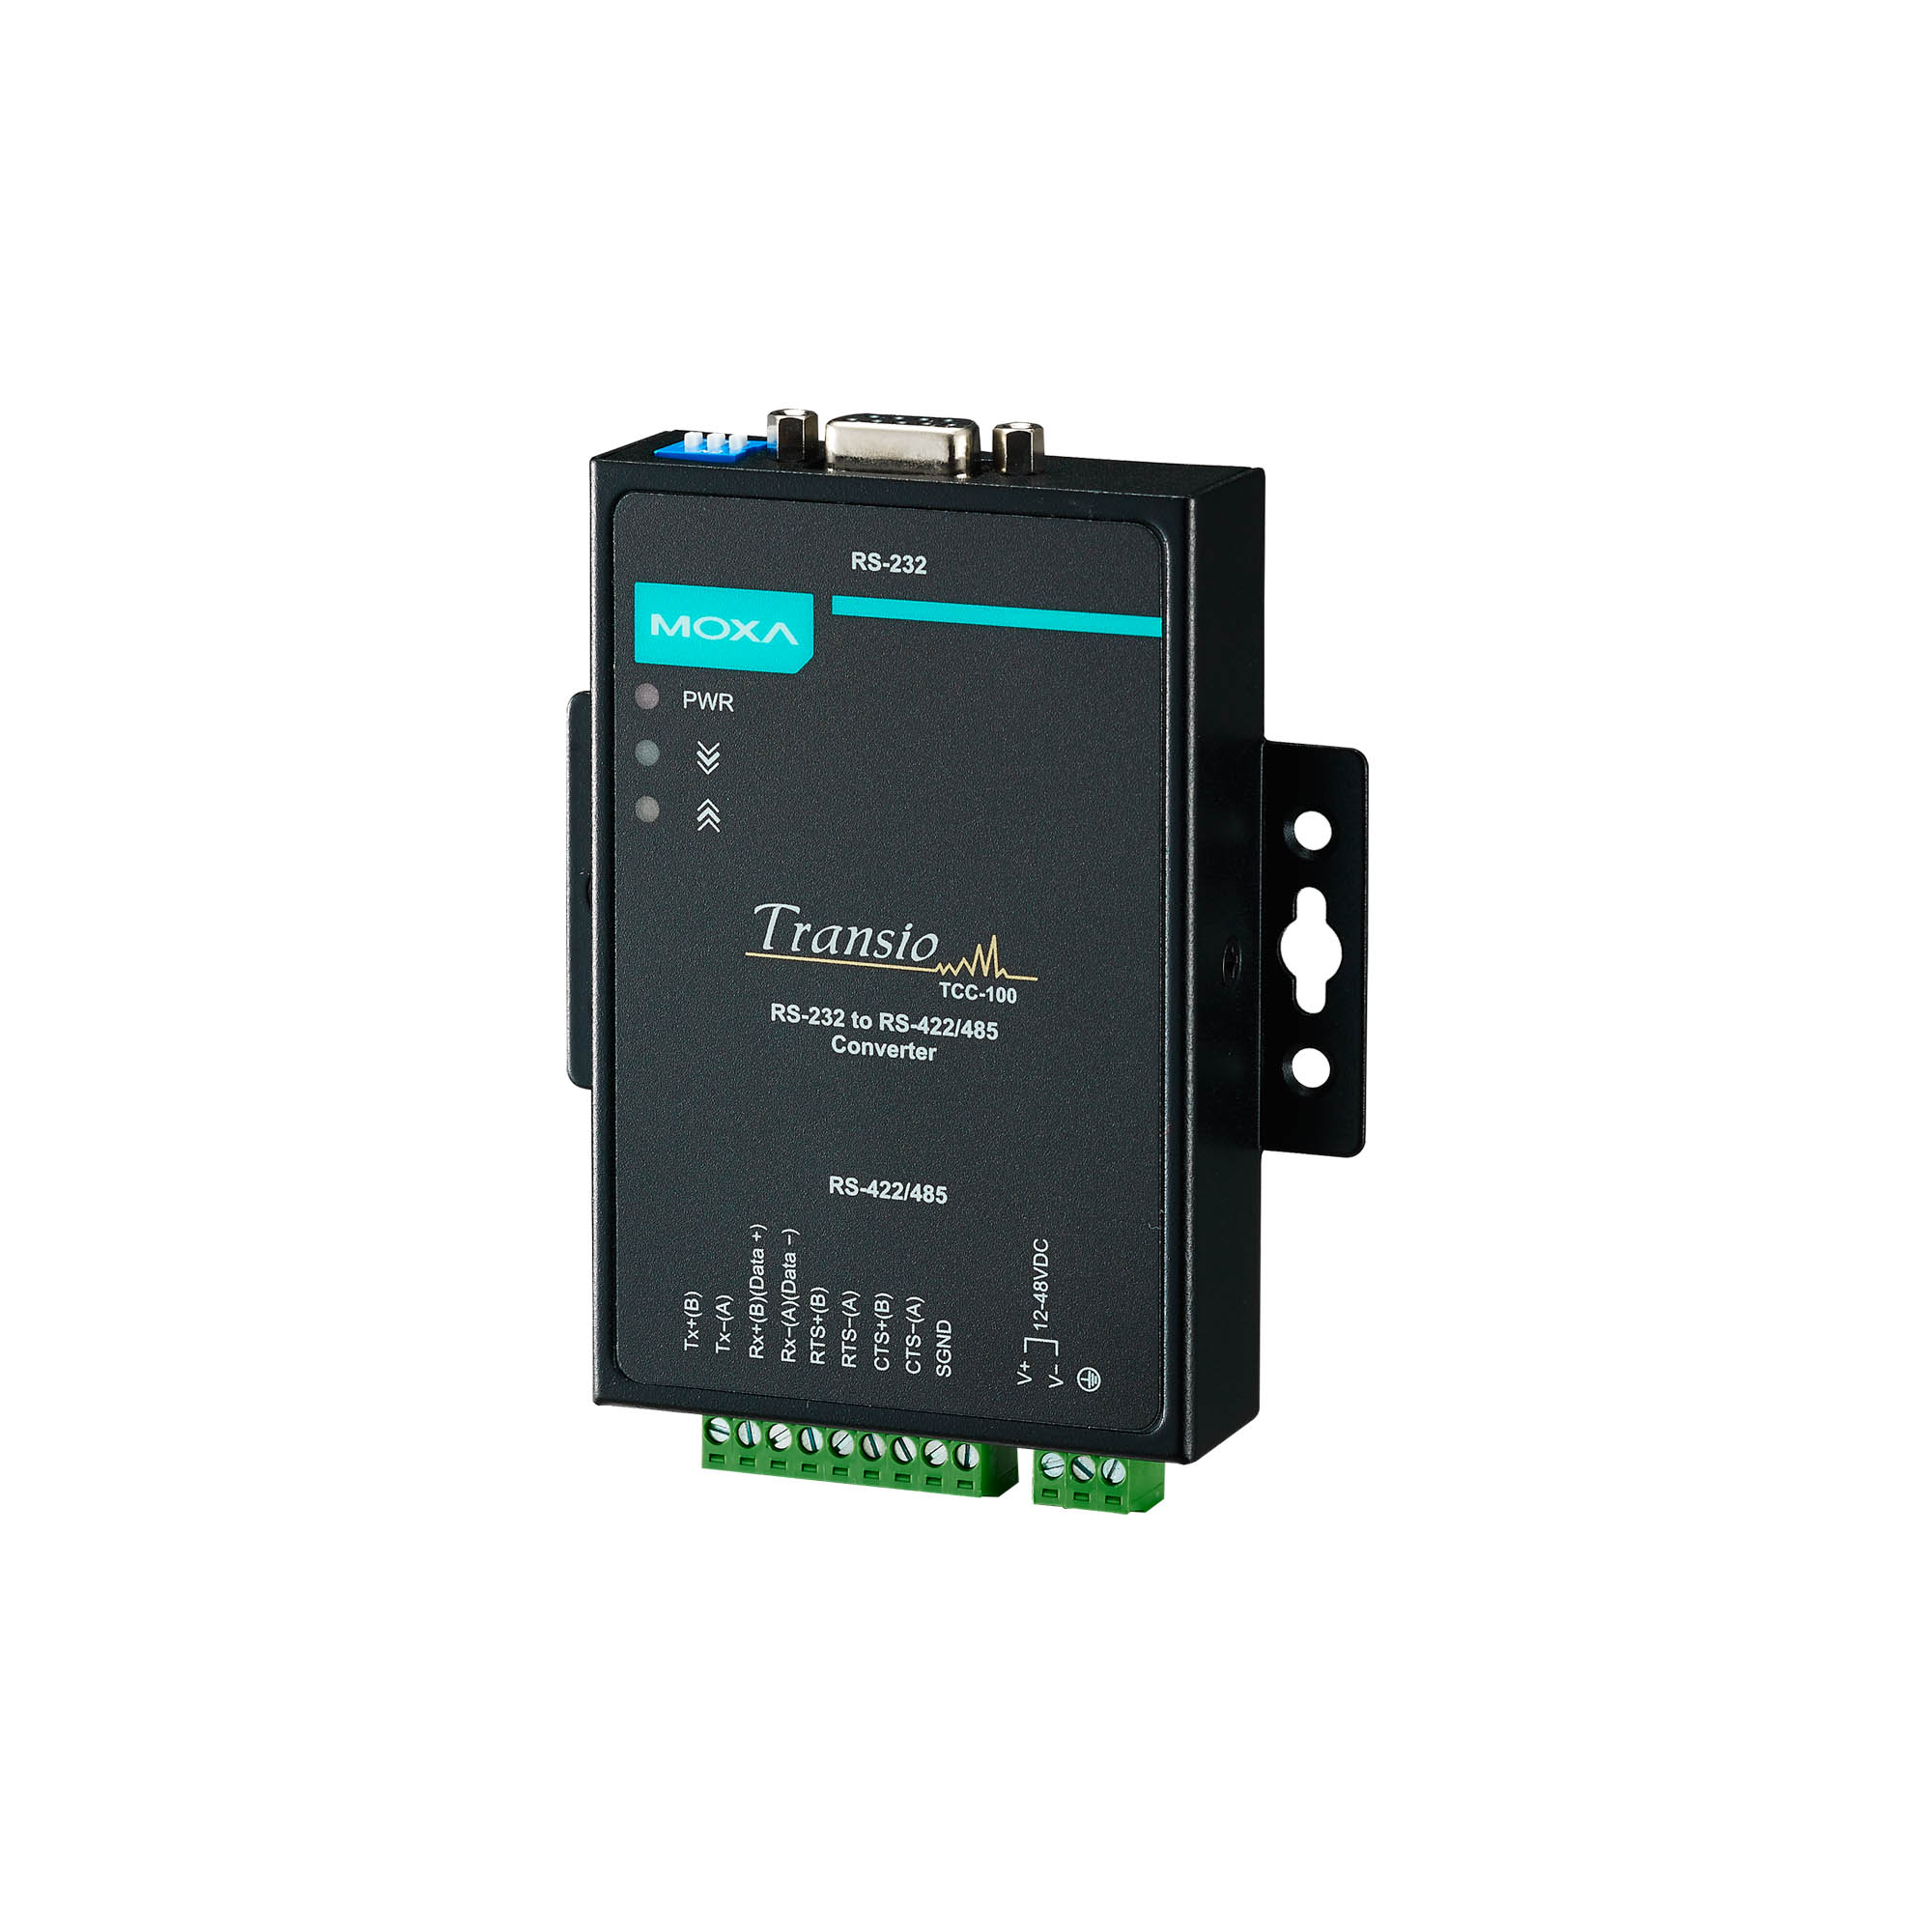 hight resolution of tcc 100 100i series serial to serial converters moxa moxa rj11 wiring